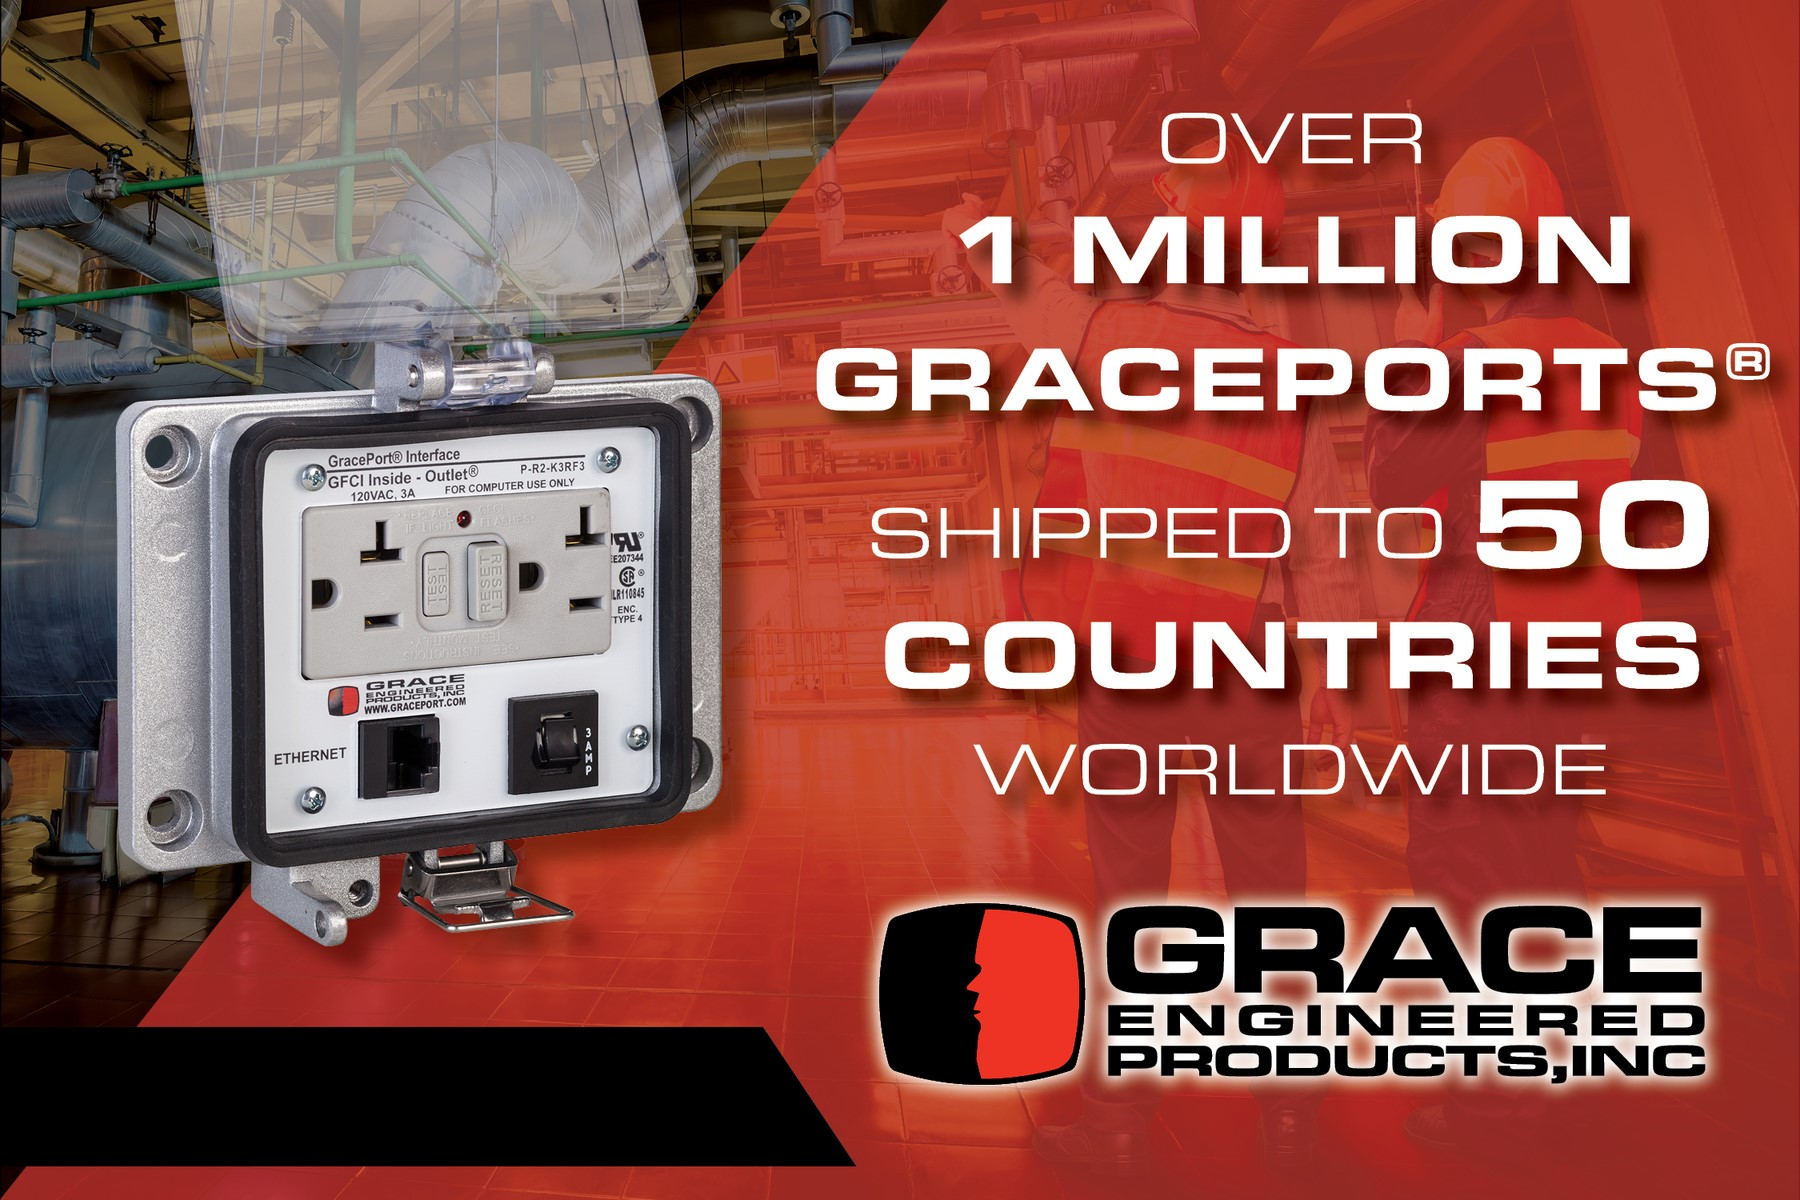 preview-lightbox-GracePort Stat Social Ad-3